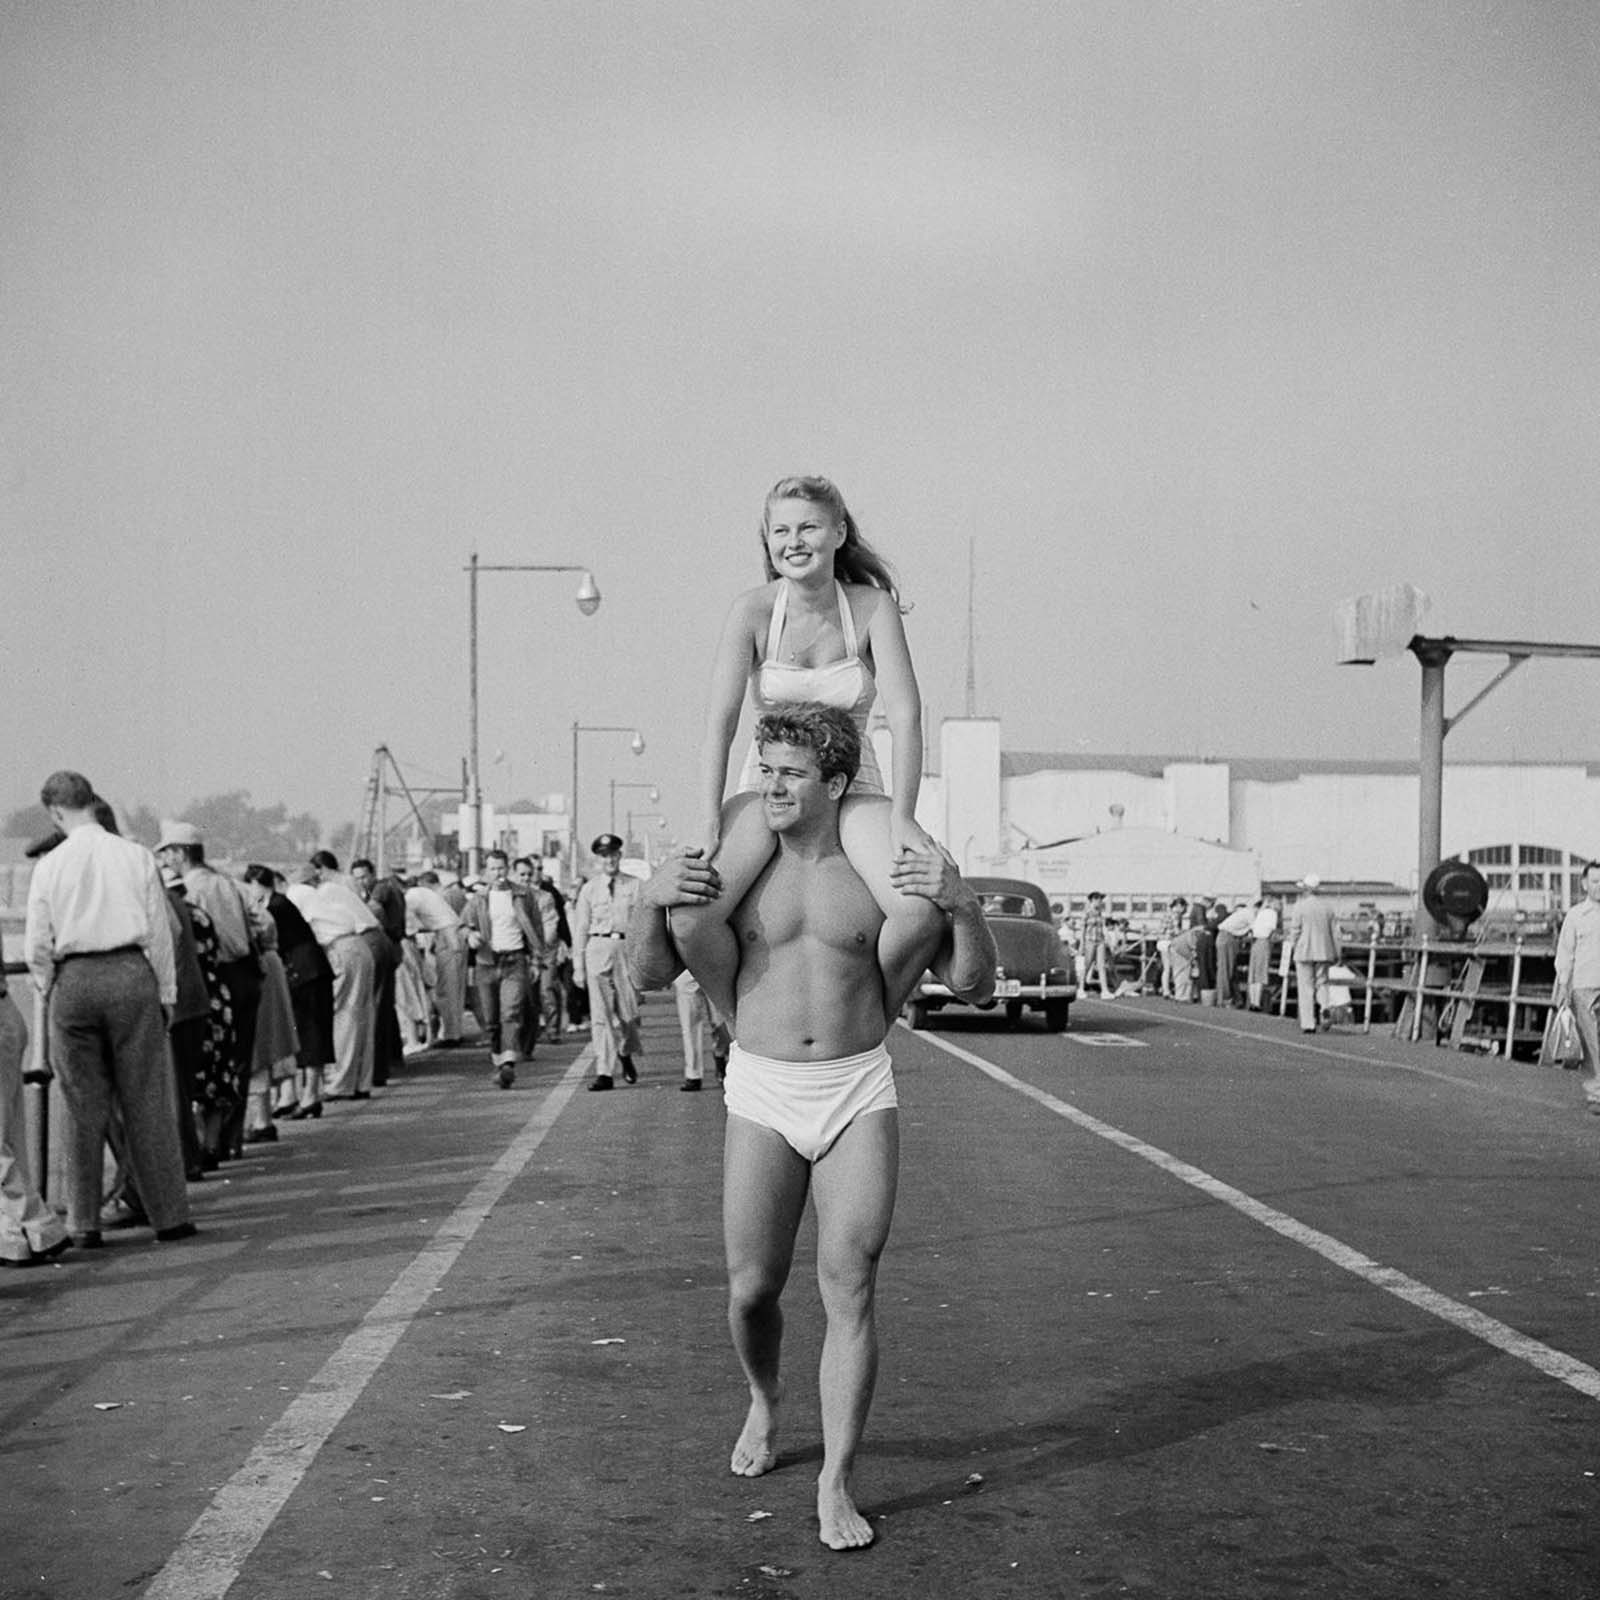 The same couple walking around the Muscle Beach.